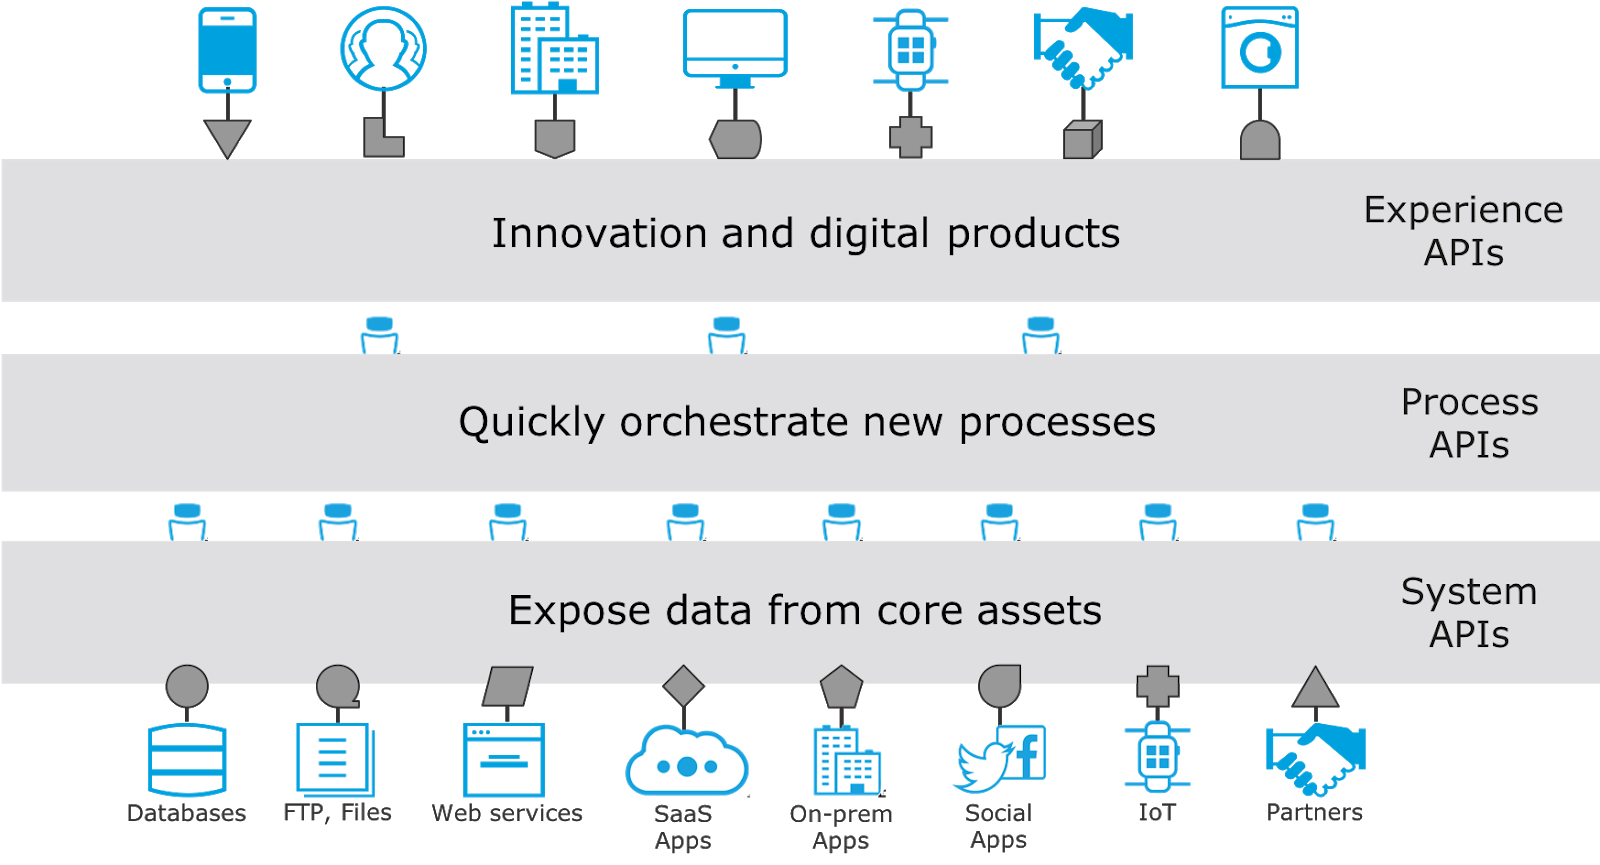 The layers of APIs start with System APIs connecting to apps and services, Process APIs in the middle responsible for orchestration, and Experience APIs purpose-built for apps.